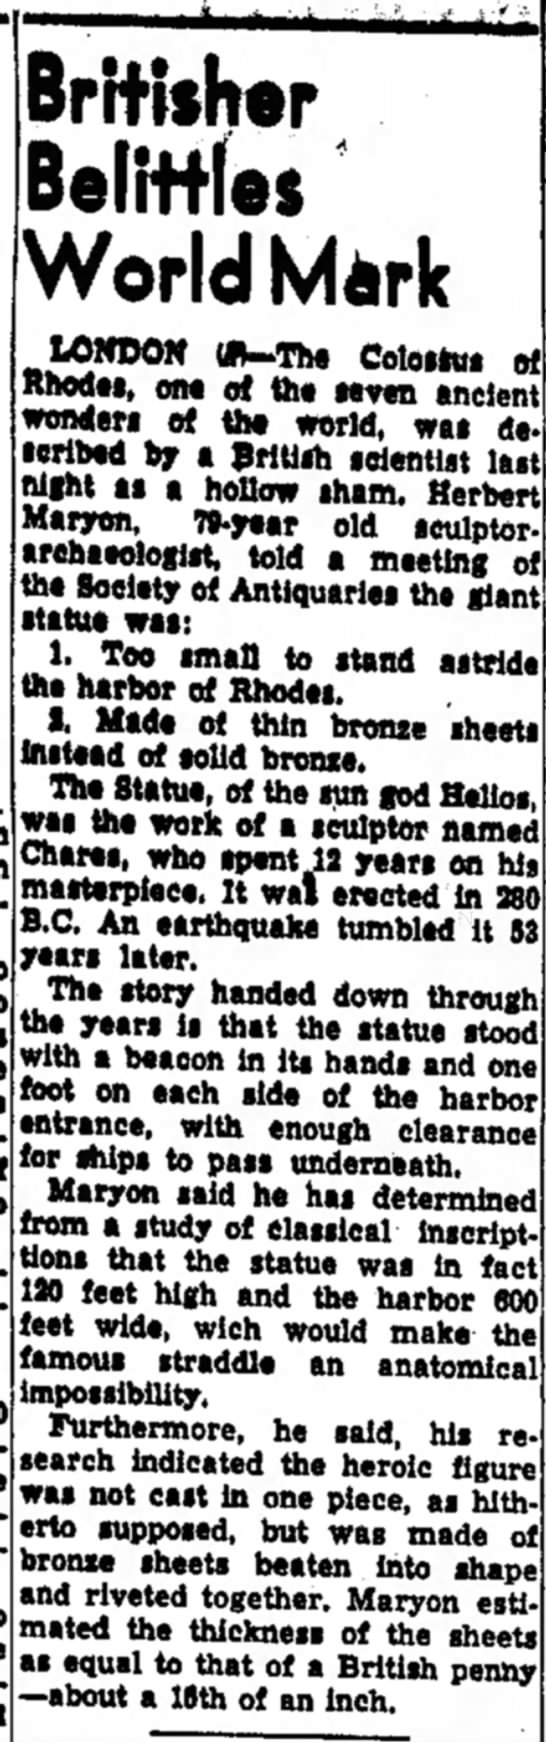 Herbert Maryon on the Colossus of Rhodes, The Indiana Gazette, 5 December 1953